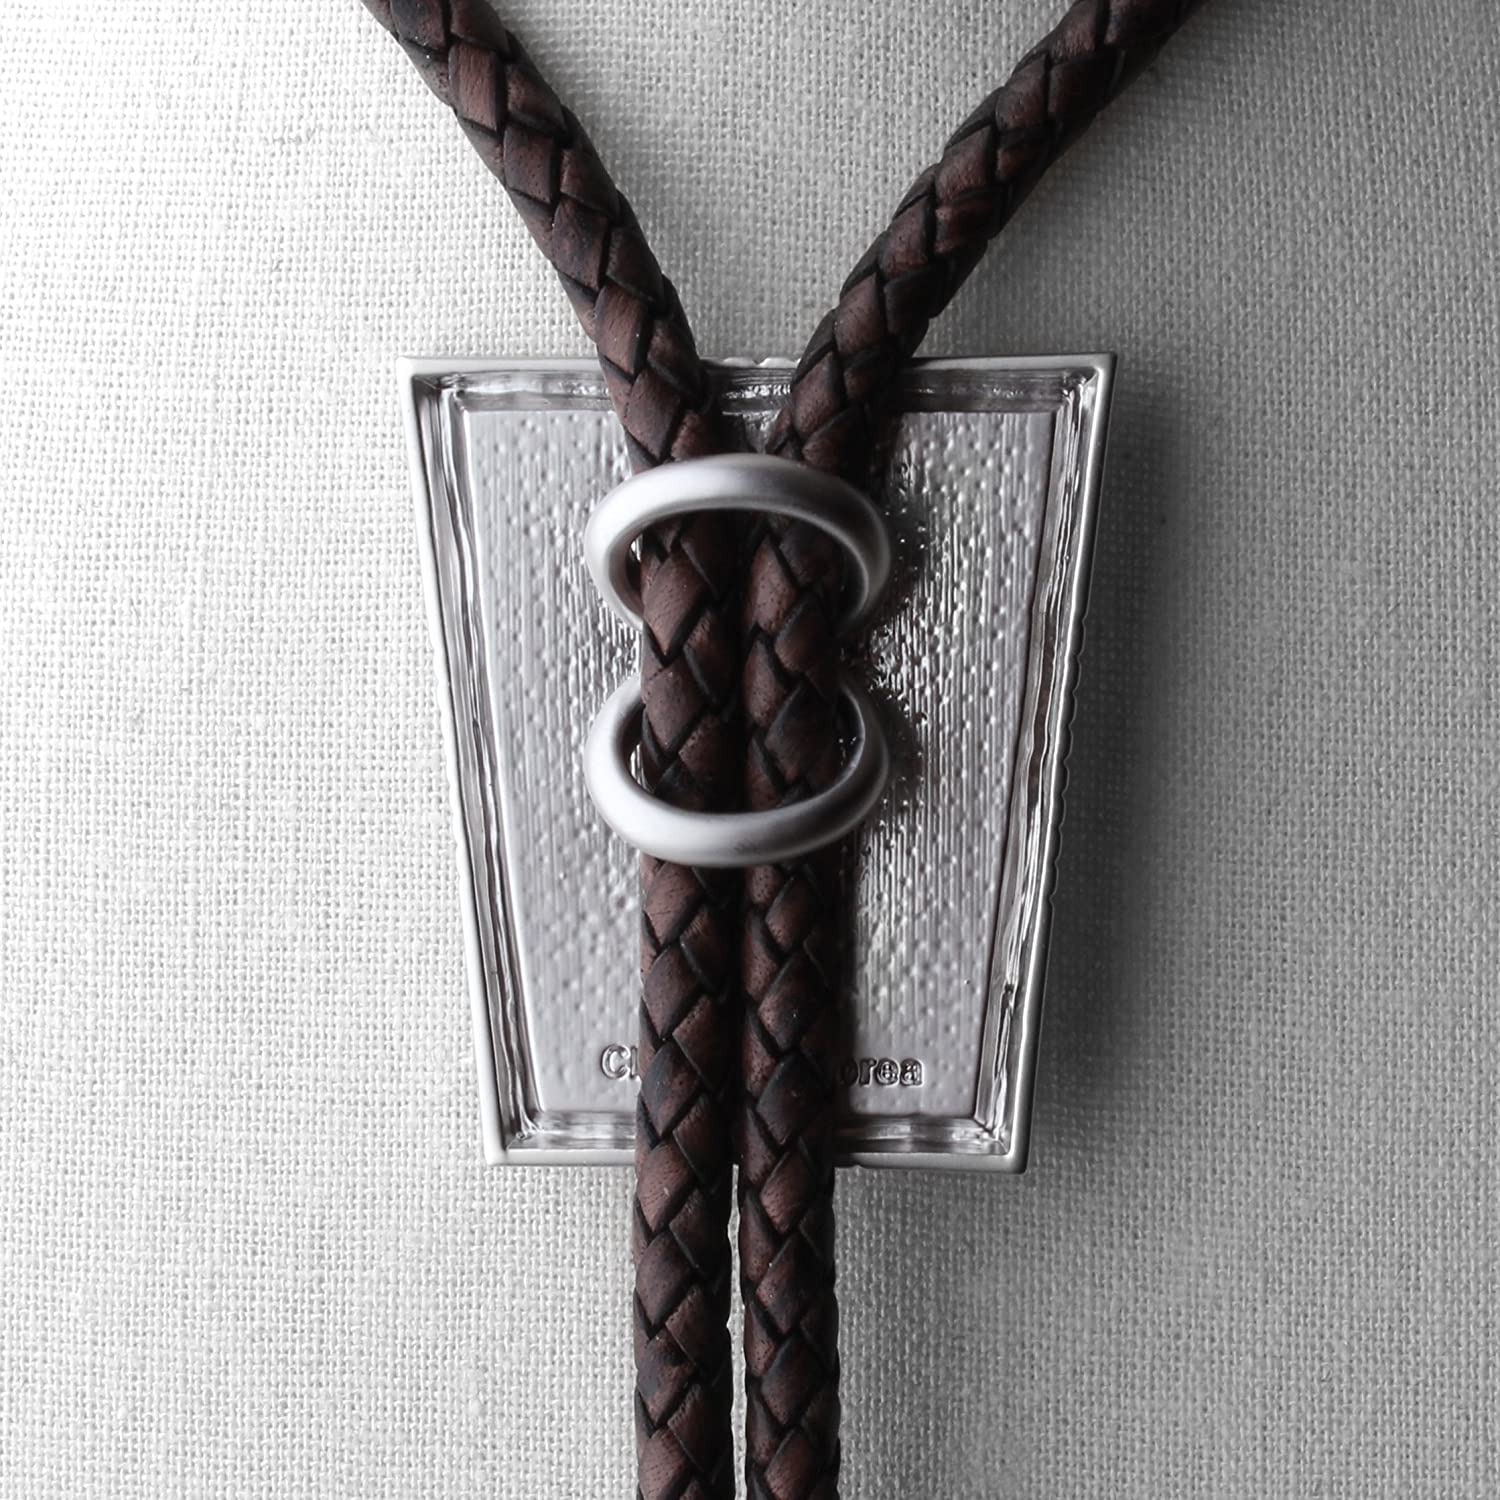 Bolo Tie Cloisonne Genuine Leather Sir Collection Patchwork VI Get One More Cord